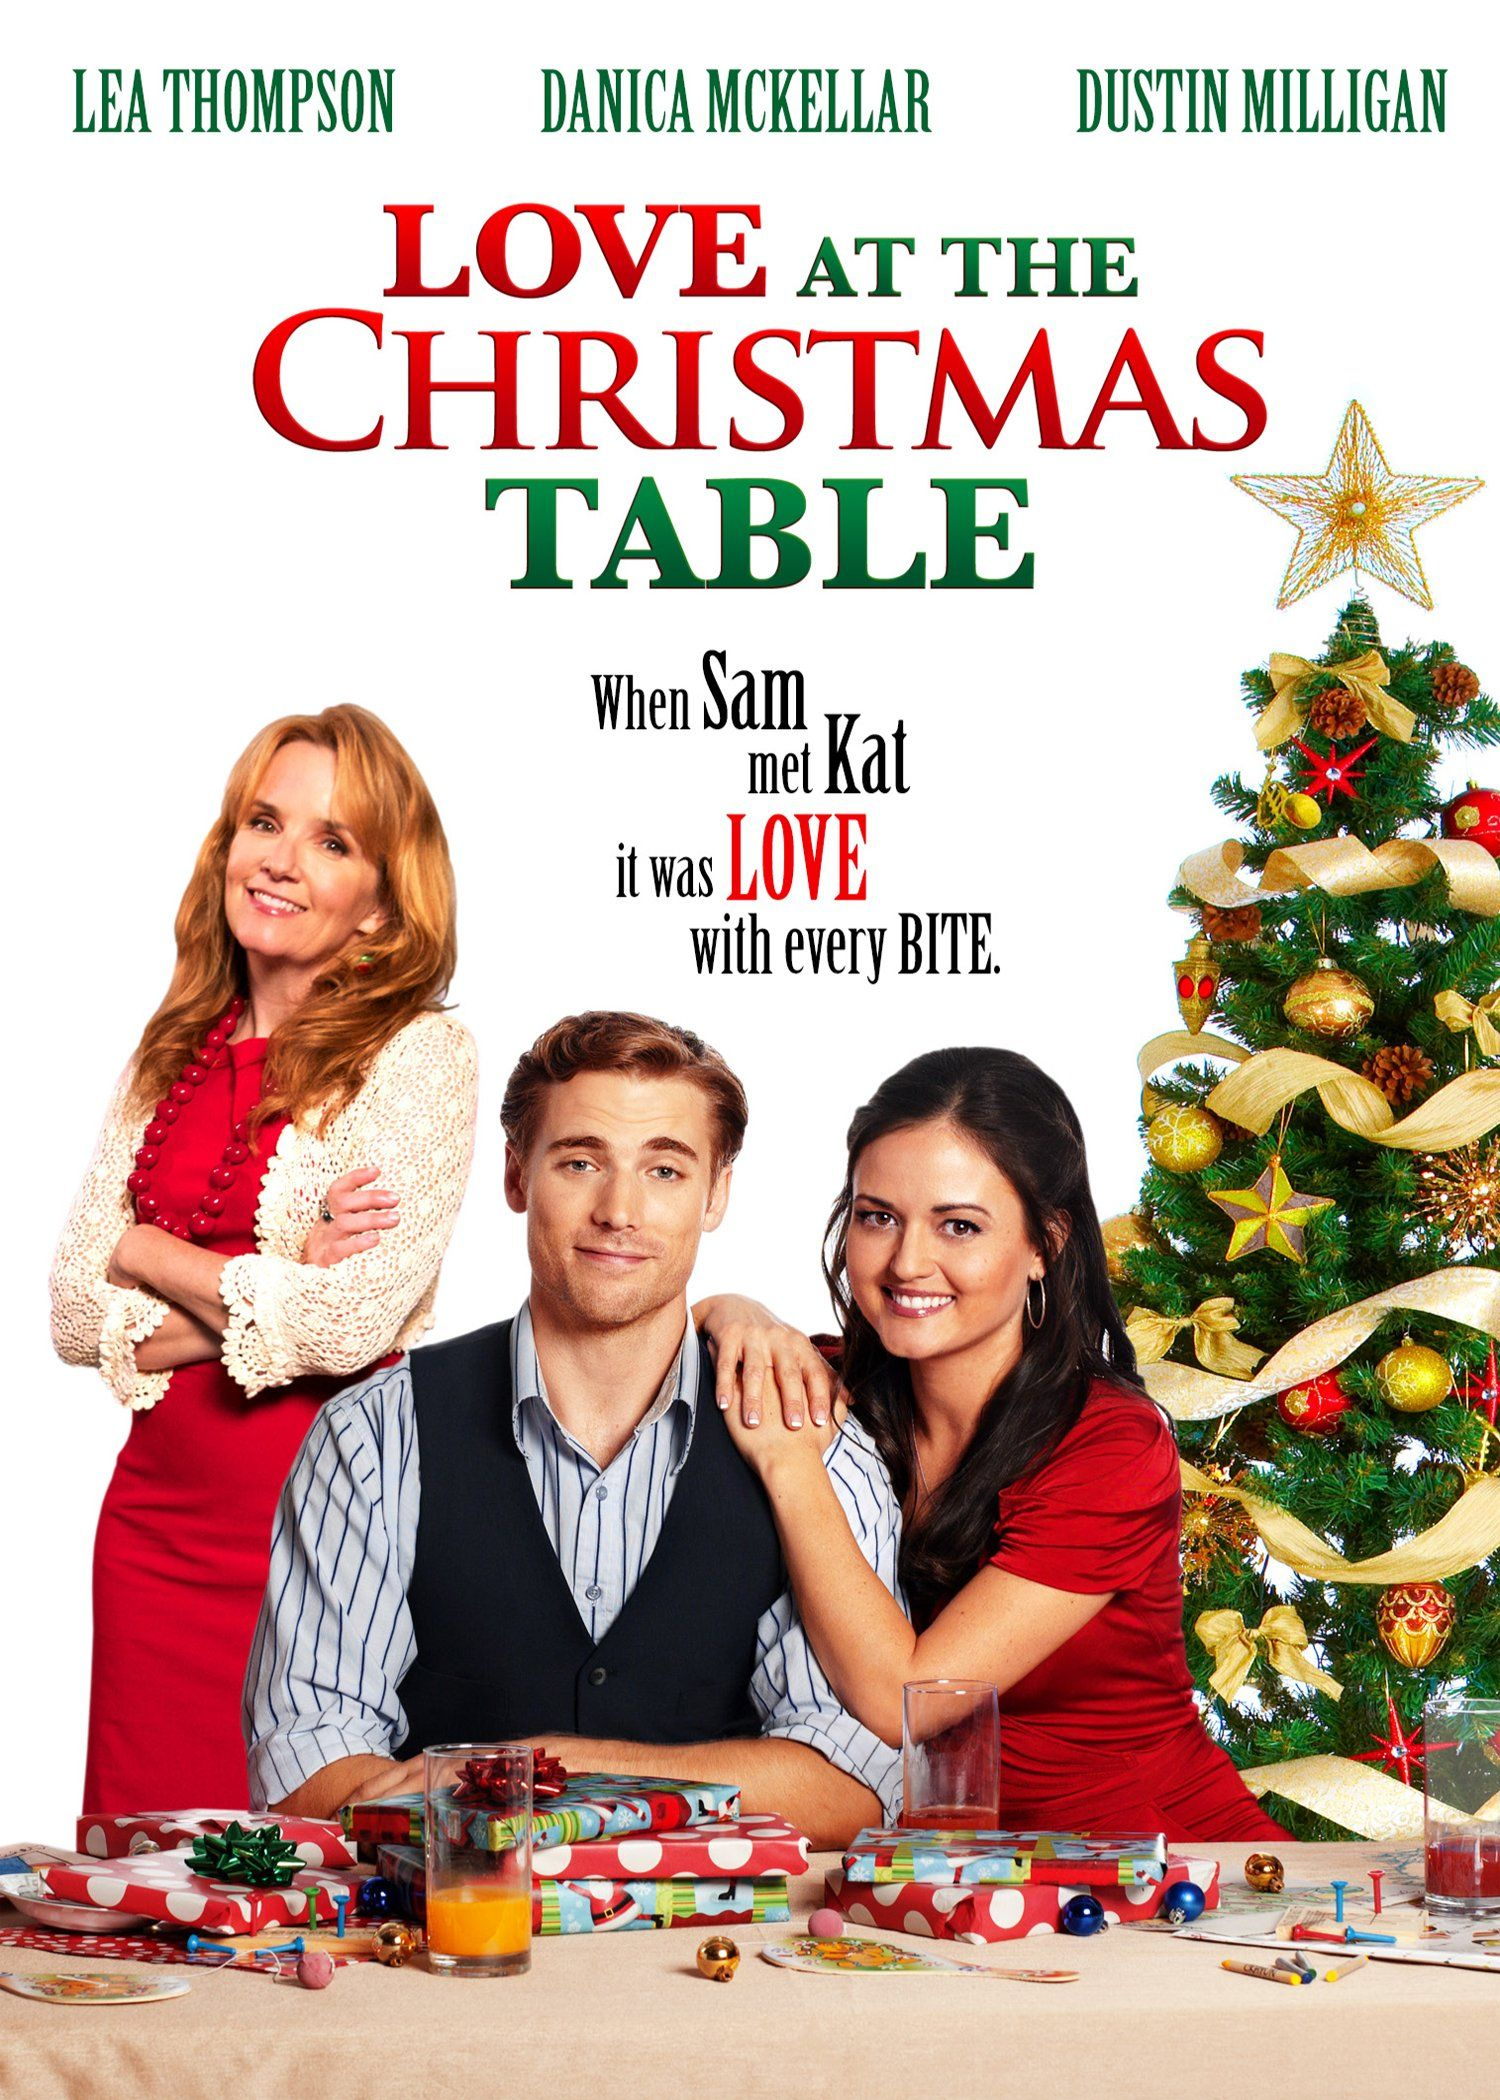 Love At The Christmas Table This One Is Predictable And Takes A Long Time To Get To The Poi Family Christmas Movies Christmas Movies Hallmark Christmas Movies